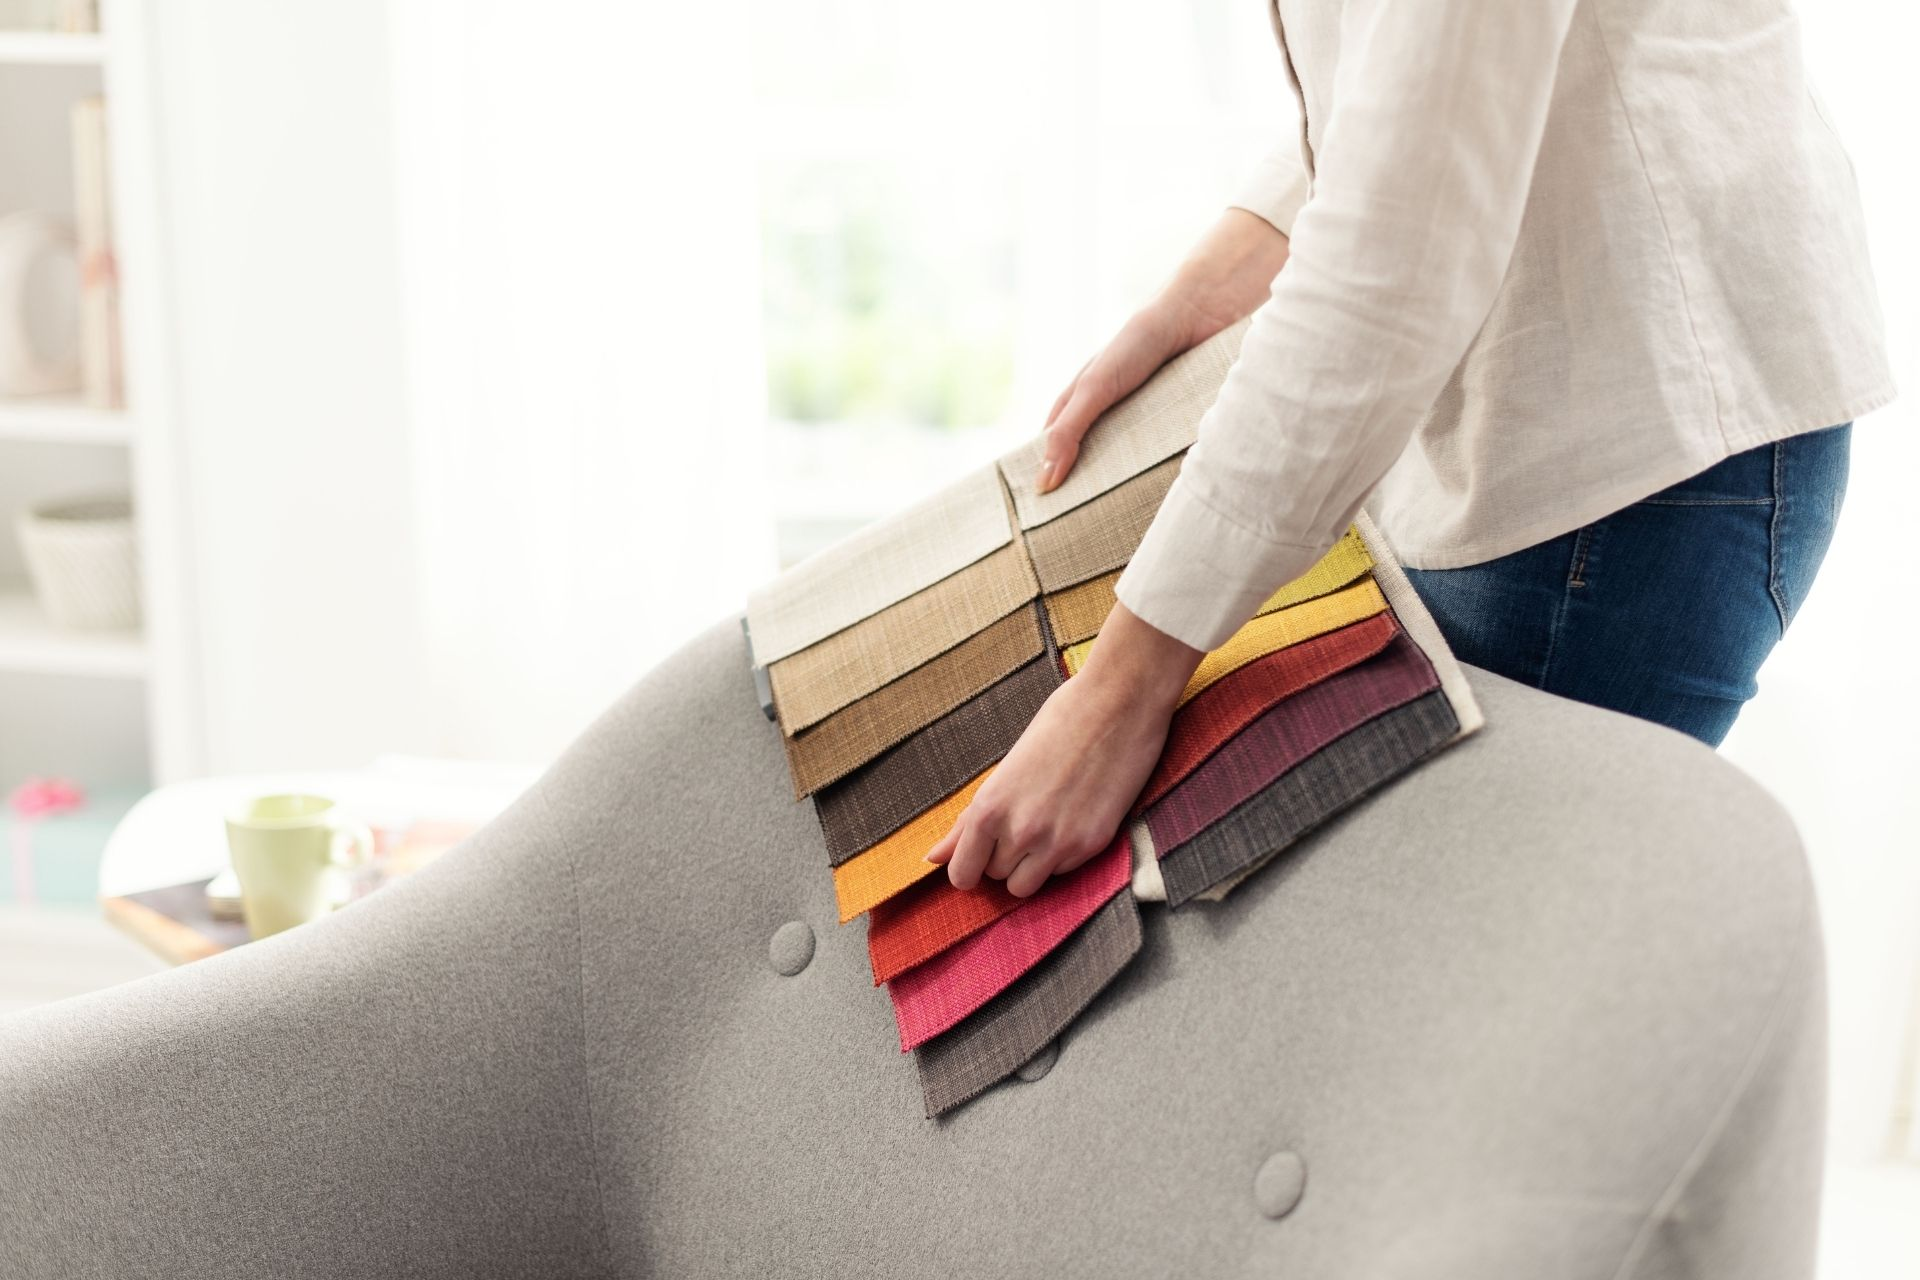 How To Choose the Best Upholstery for Your Furniture